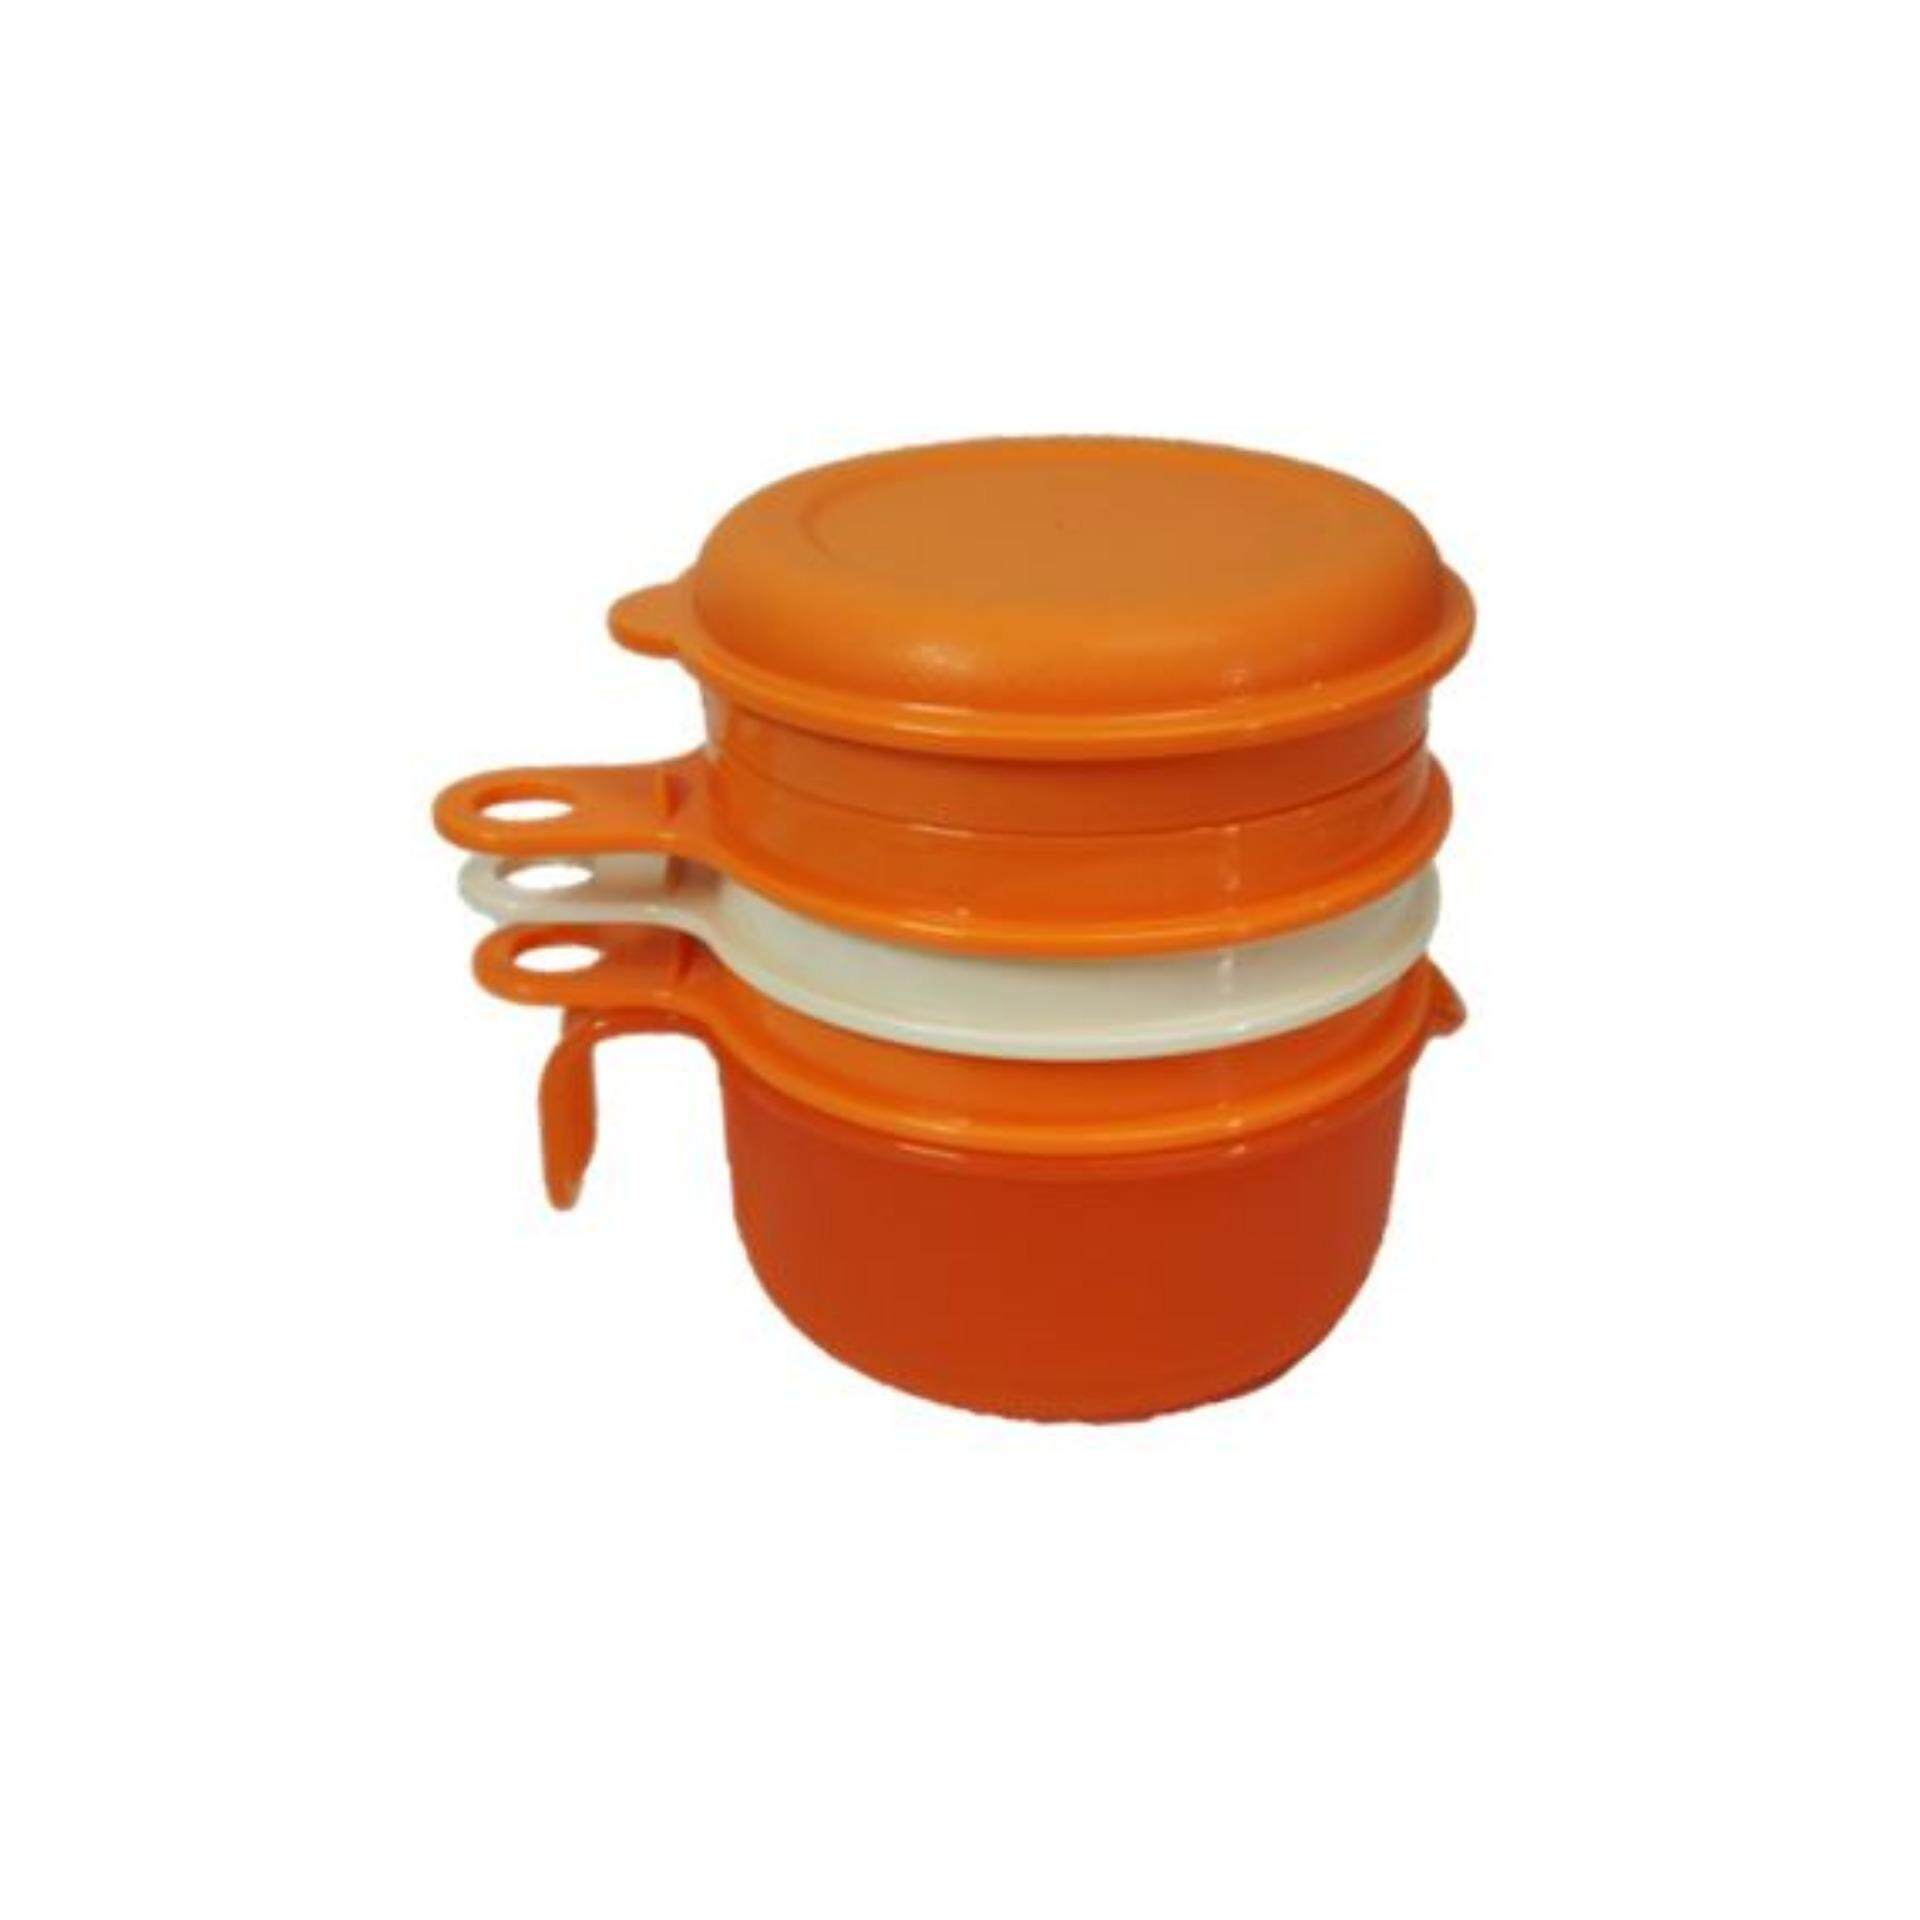 Tupperware Cook's Maid